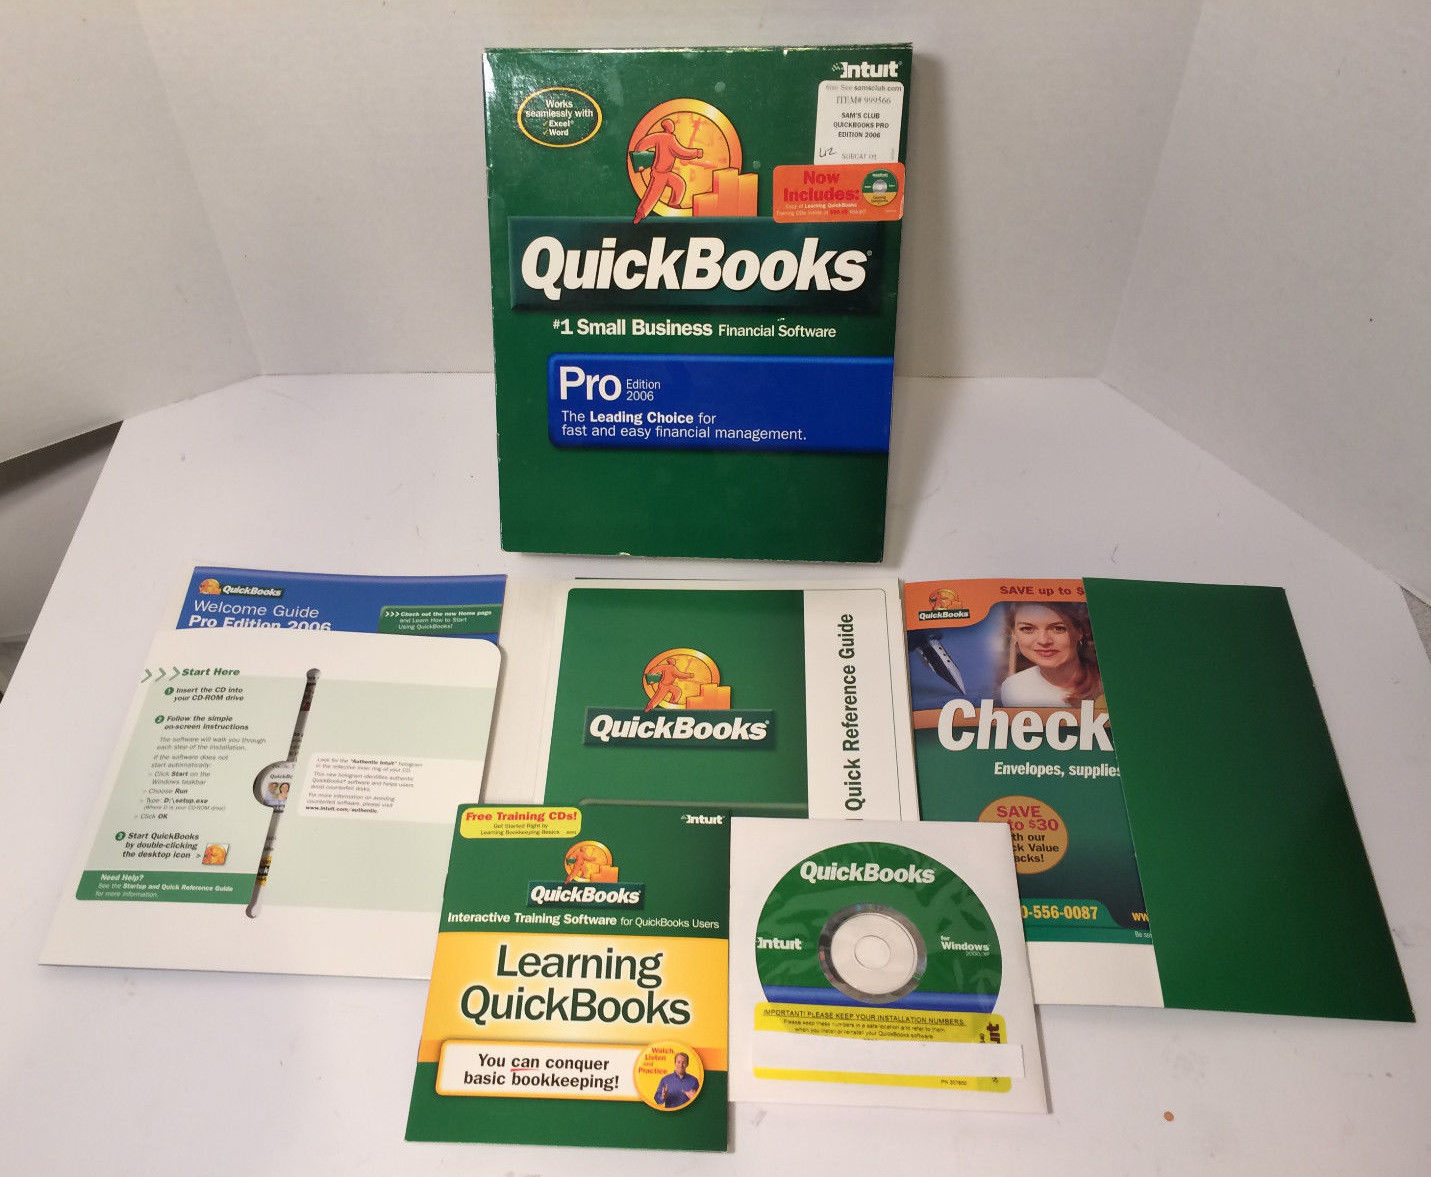 Intuit Quickbooks Pro 2006 Small Business Financial Software + Learning QB CD